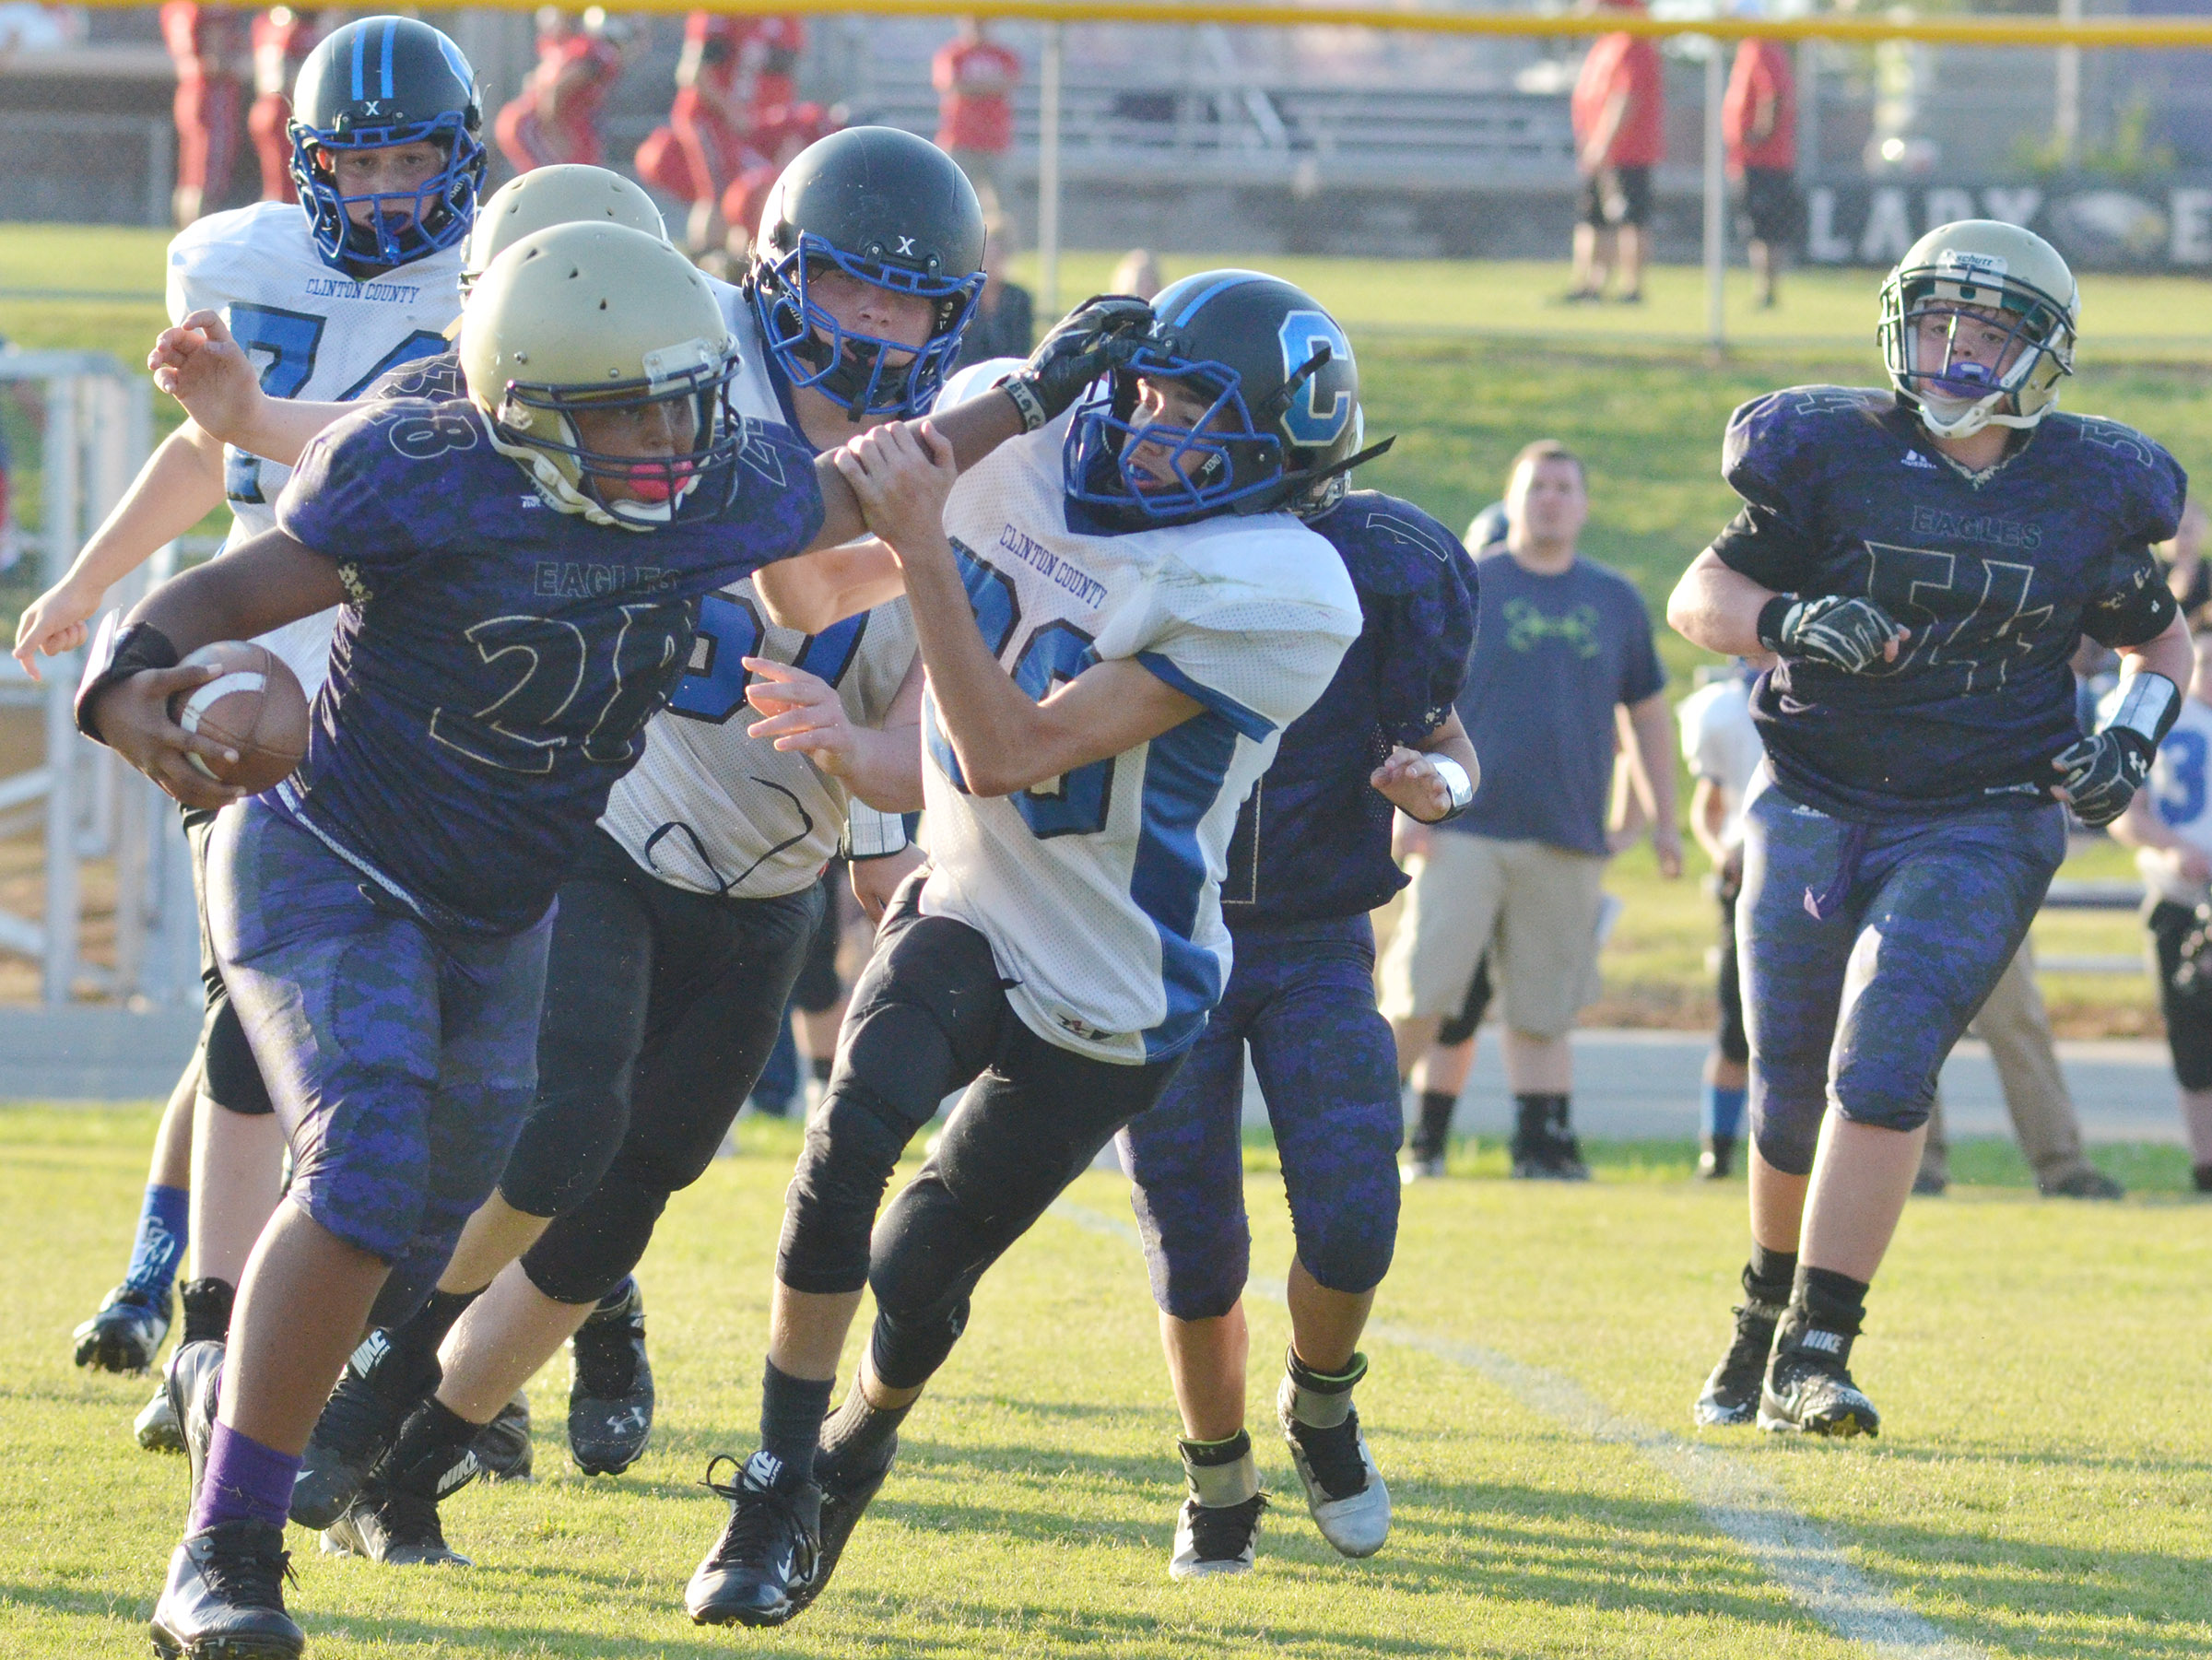 CMS seventh-graders Keondre Weathers blocks as he runs the ball.